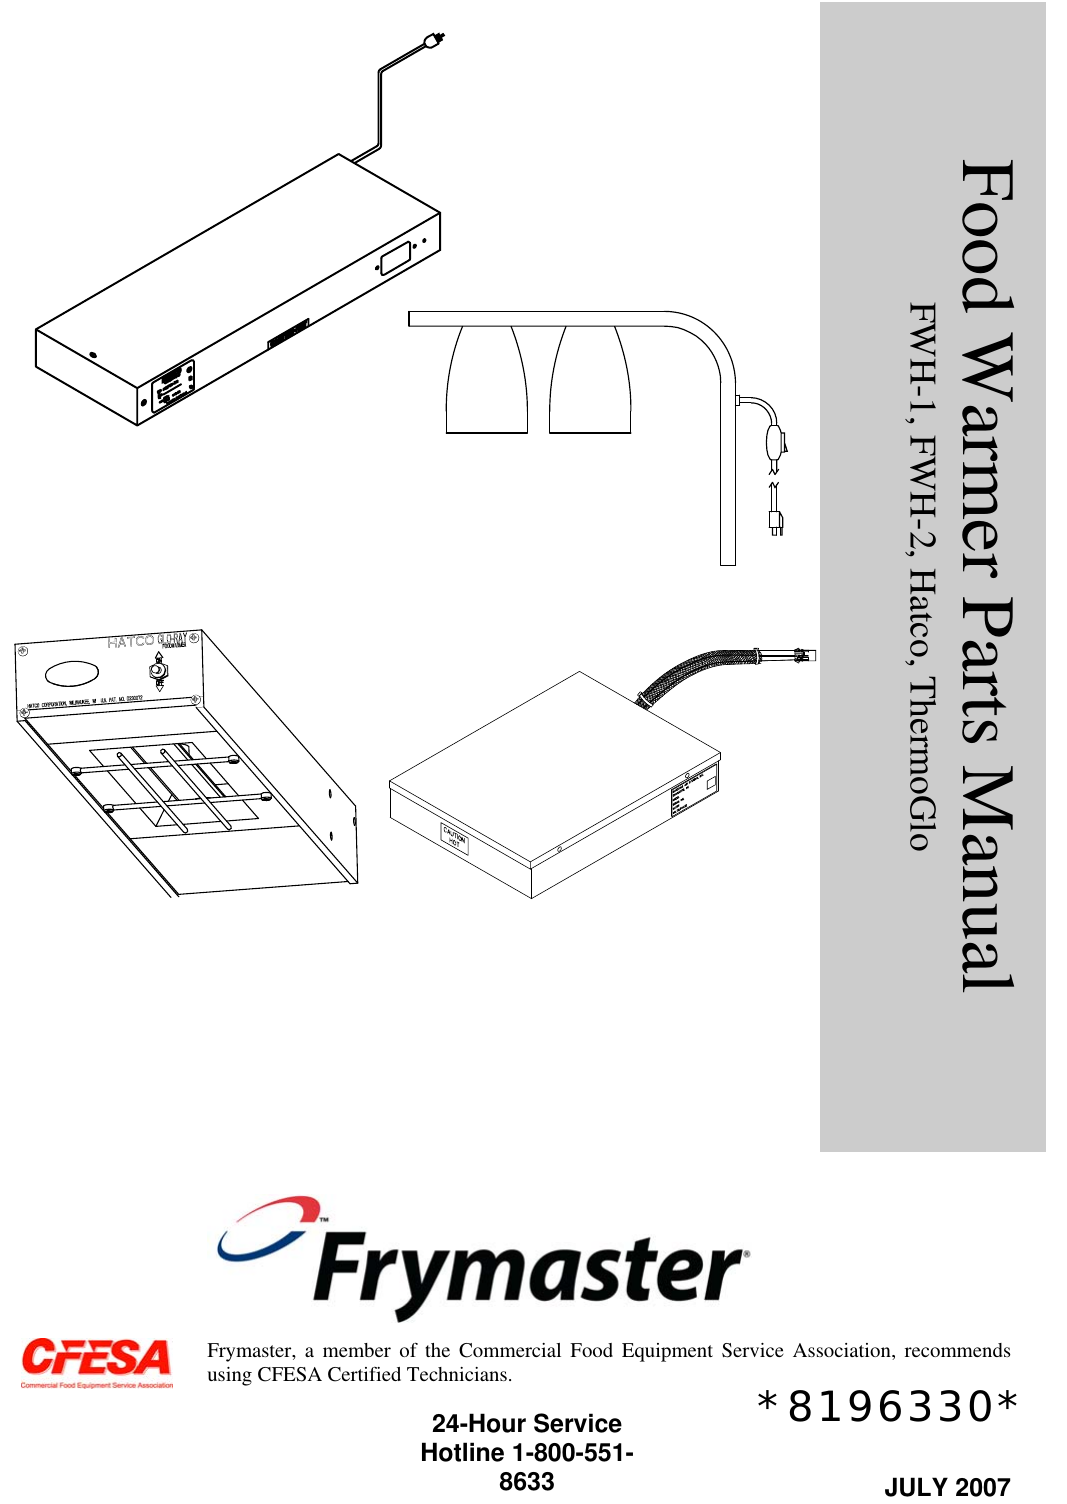 Frymaster Fwh 1 Users Manual Heat Lamp Cover Wiring Diagram